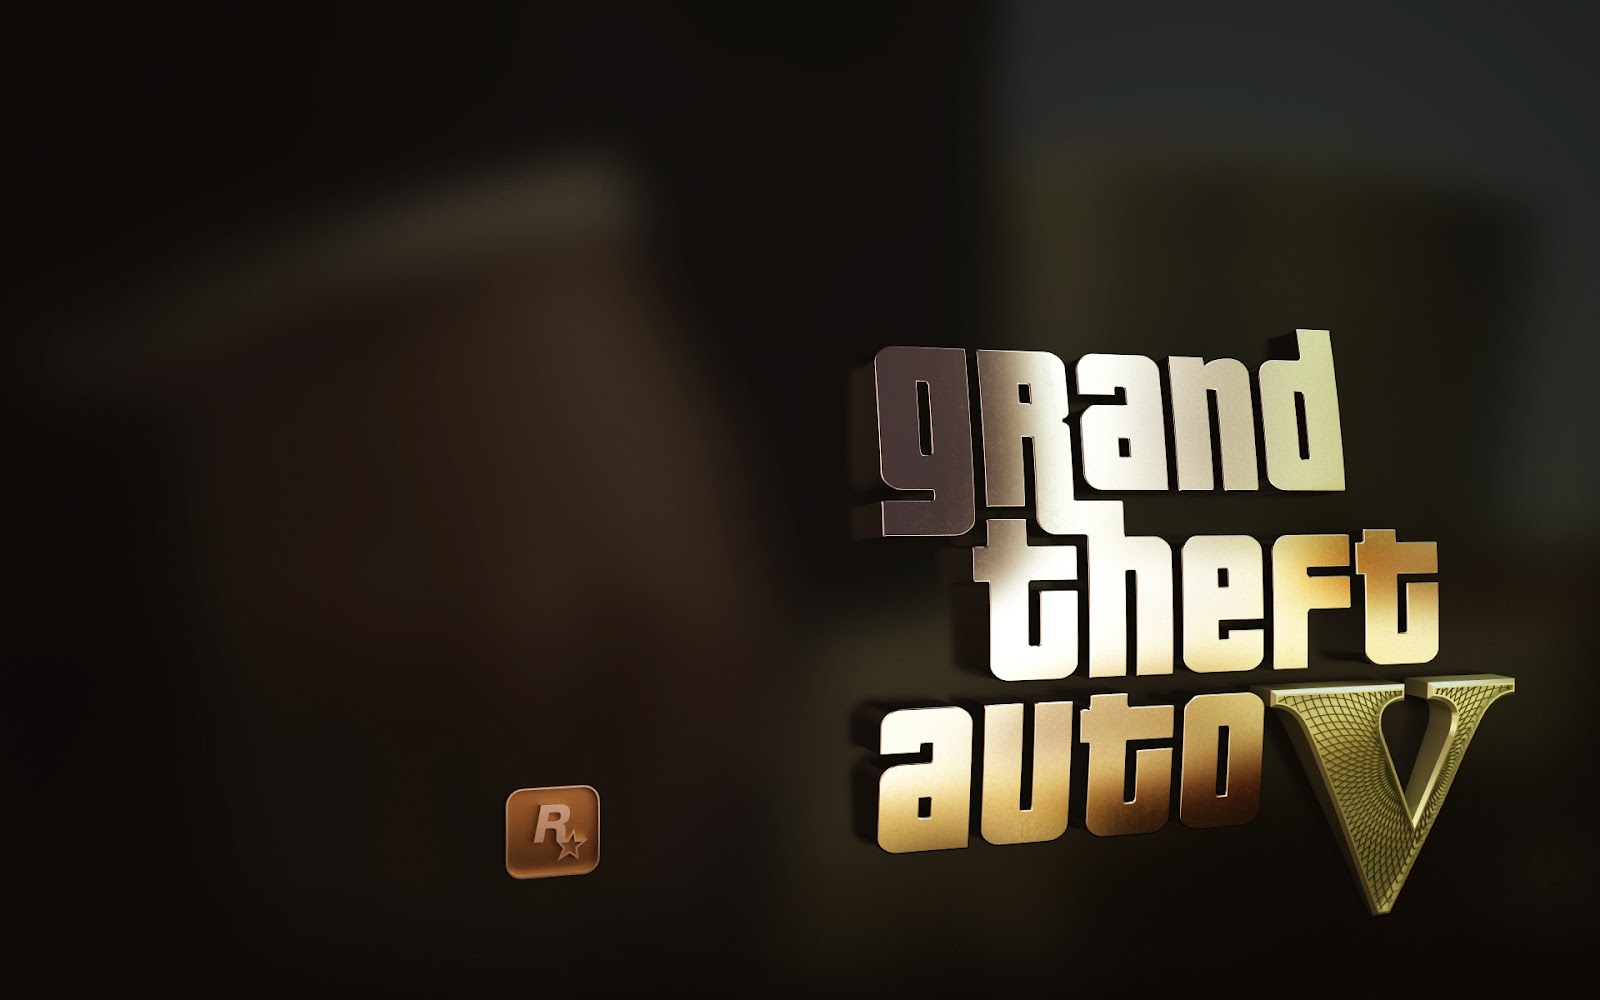 gzel grand theft auto 5 hd resimleri game wallpapers wallpapers 1600x1000